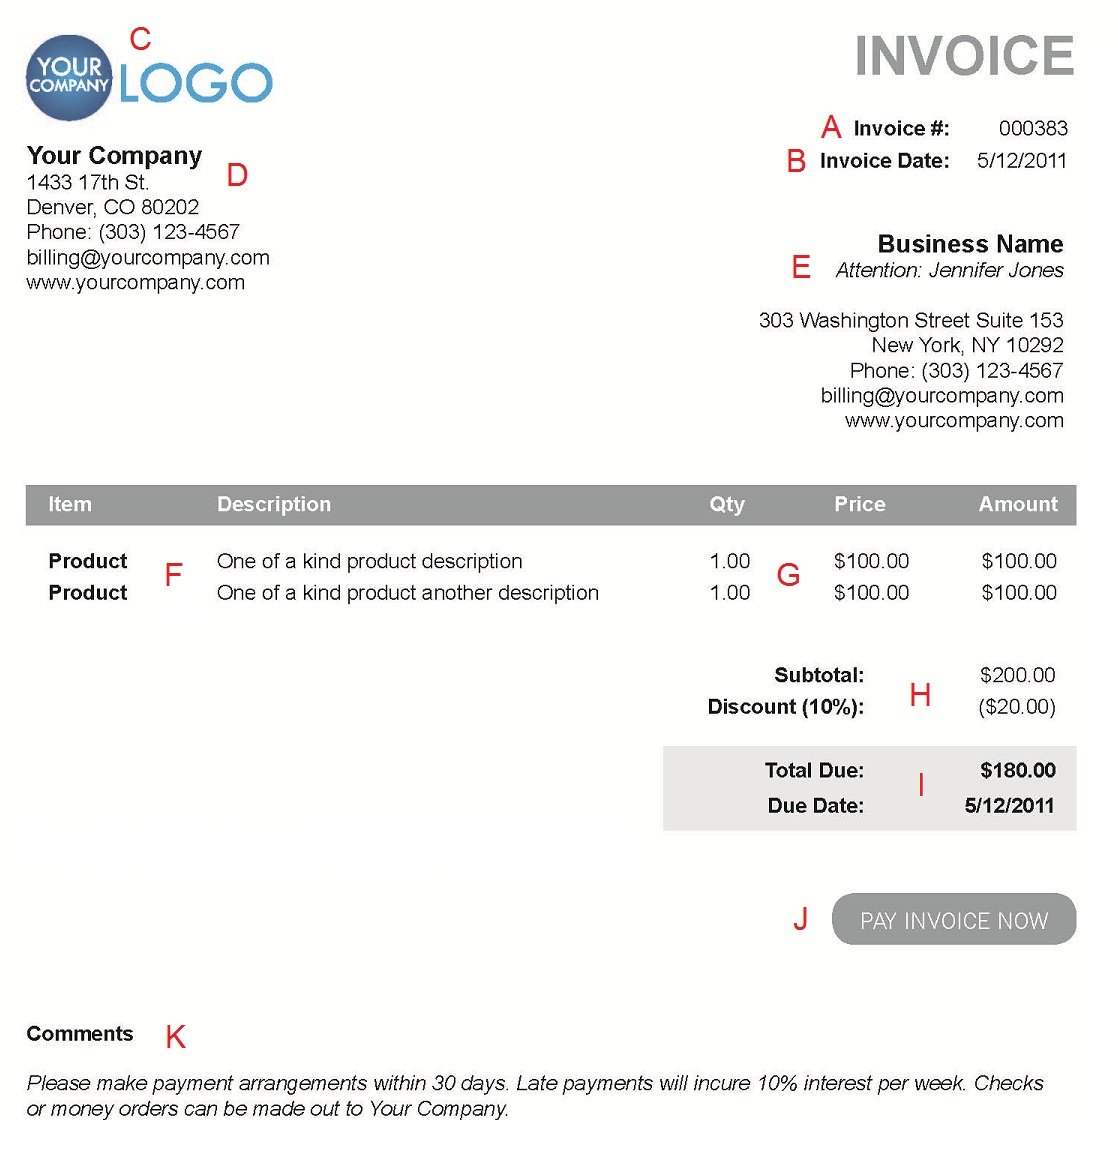 Shopdesignsus  Scenic The  Different Sections Of An Electronic Payment Invoice With Engaging A  With Alluring Free Printable Business Invoices Also Invoice Price New Cars In Addition Microsoft Word Invoice Template Download And What Is A Purchase Invoice As Well As Sale Invoice Template Additionally Invoice Or Receipt From Paysimplecom With Shopdesignsus  Engaging The  Different Sections Of An Electronic Payment Invoice With Alluring A  And Scenic Free Printable Business Invoices Also Invoice Price New Cars In Addition Microsoft Word Invoice Template Download From Paysimplecom